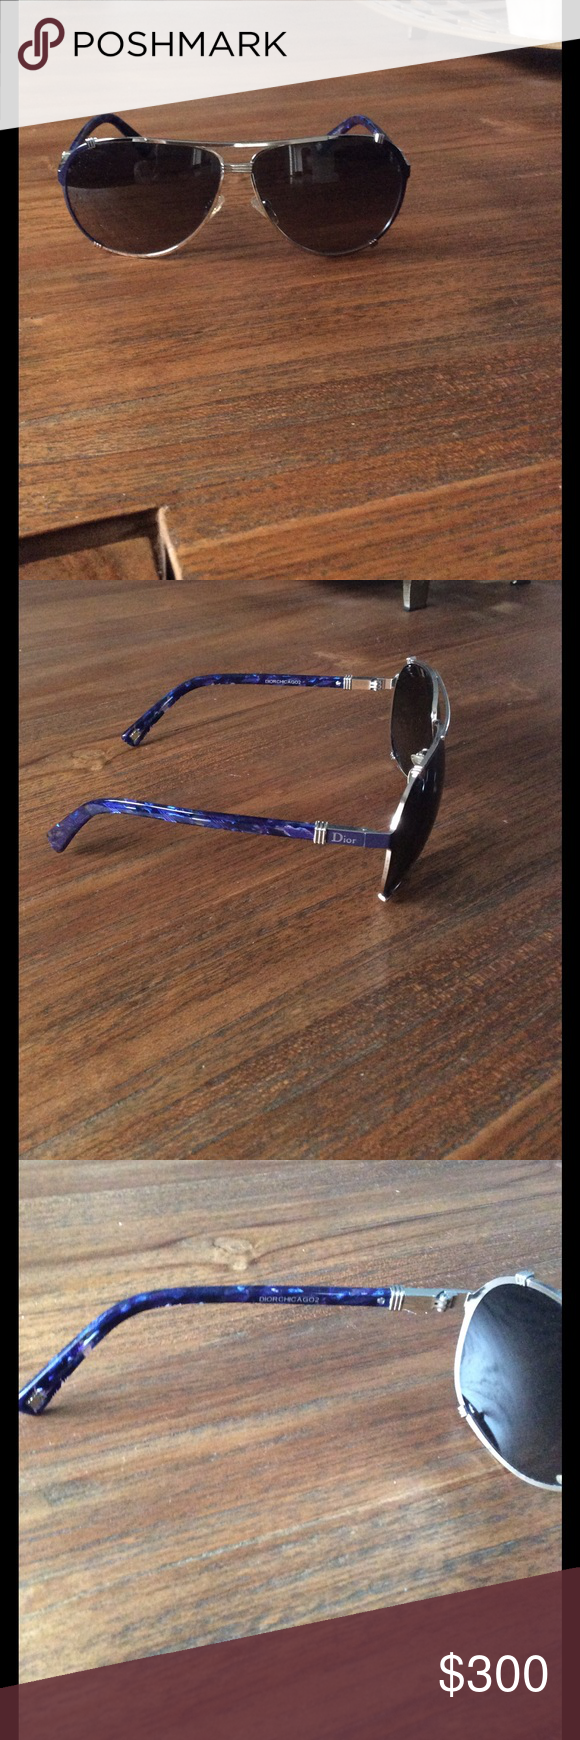 d394d4c289d NO Scratches and NOT stretched out. Like new. Aviator sunglasses